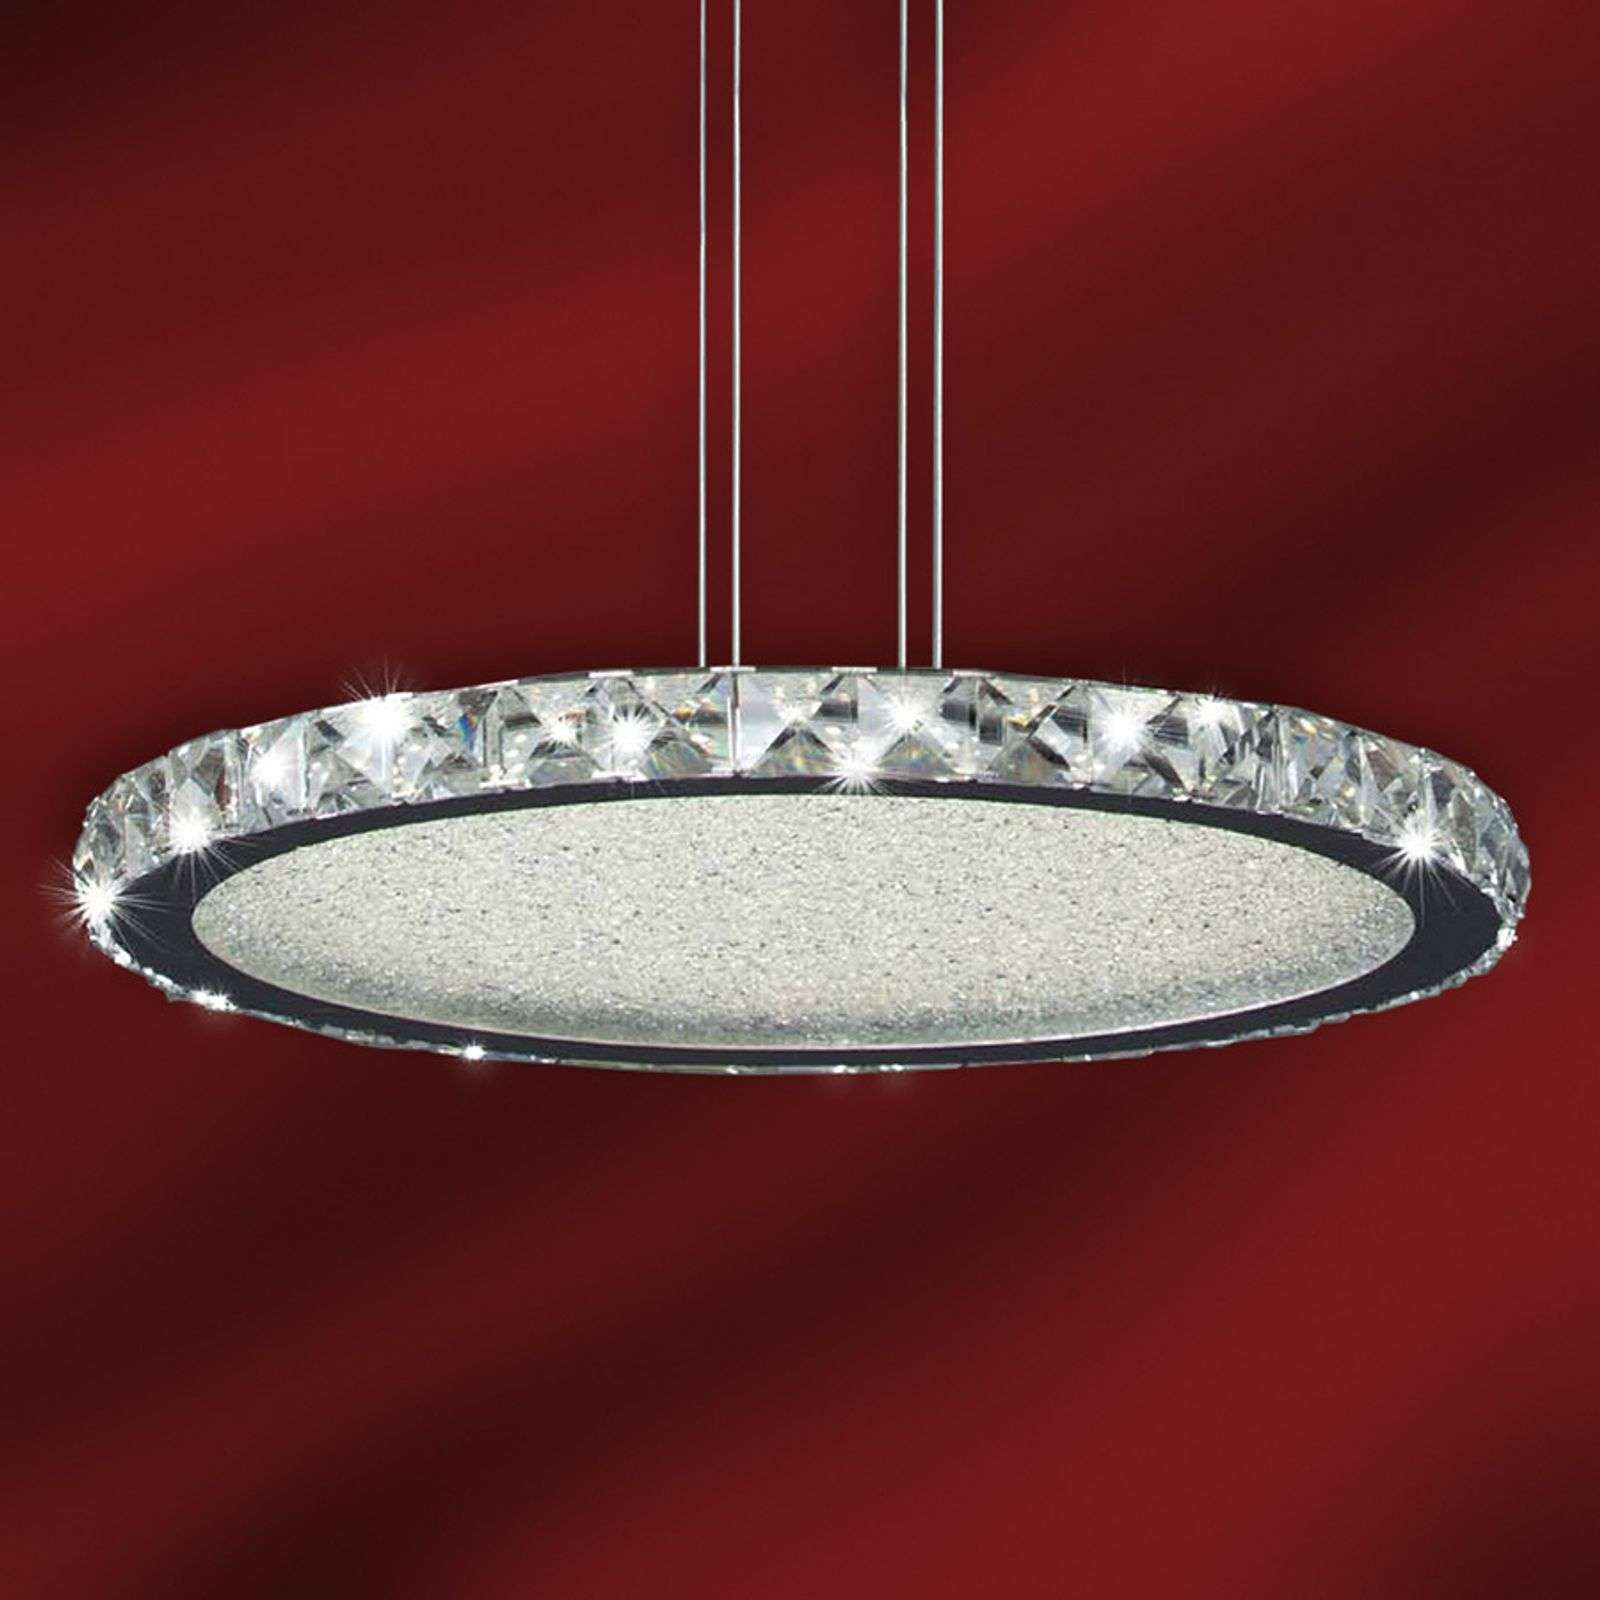 Suspension LED ronde Crystal 42 cm